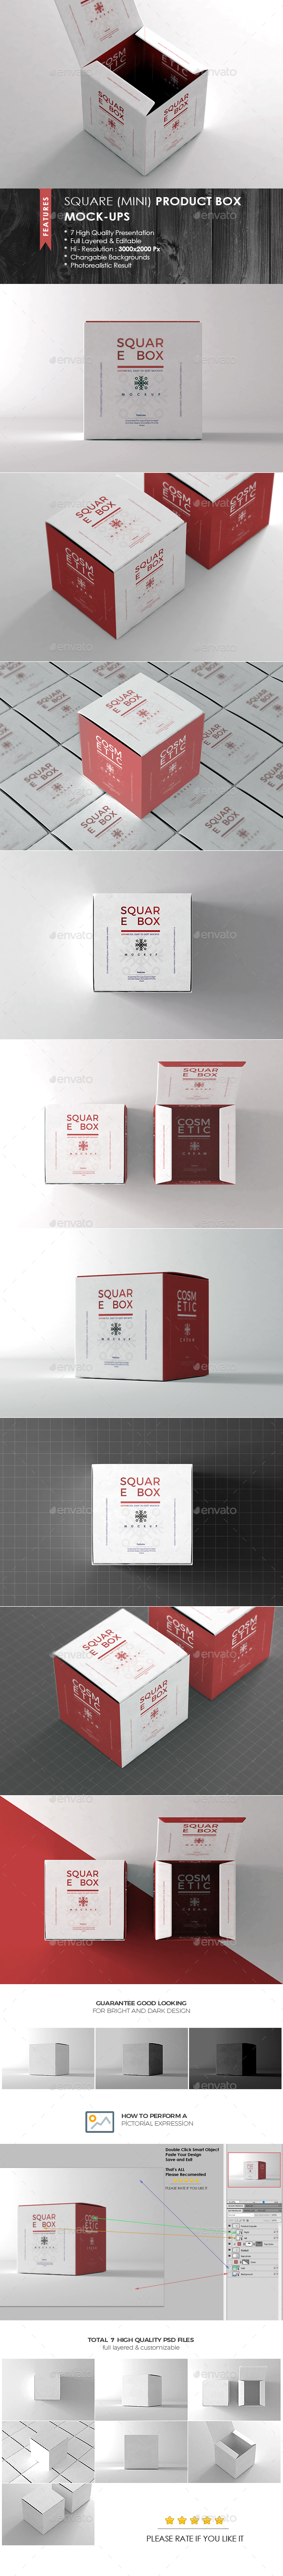 Square Box Mock-up - Packaging Product Mock-Ups